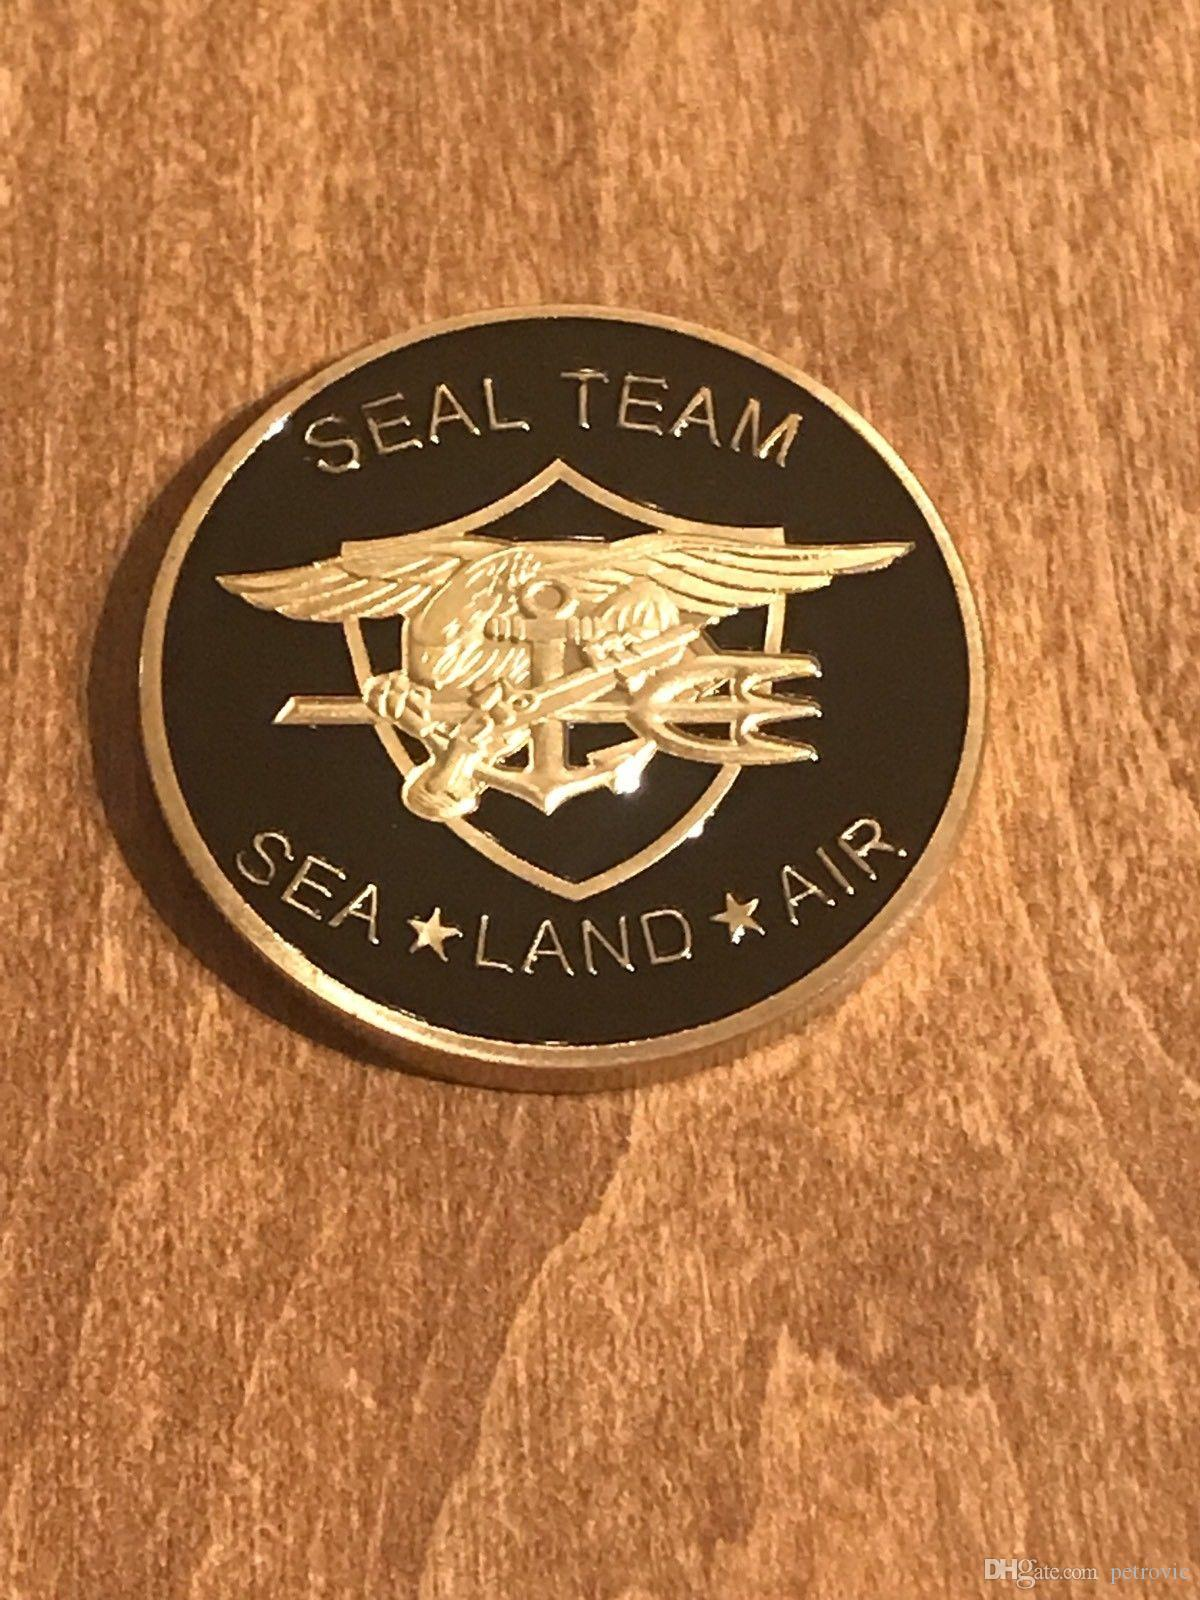 Free Shipping 2pcs/lot, United States Navy Challenge Coin Seal Team Sea  Land Air Challenge Coin